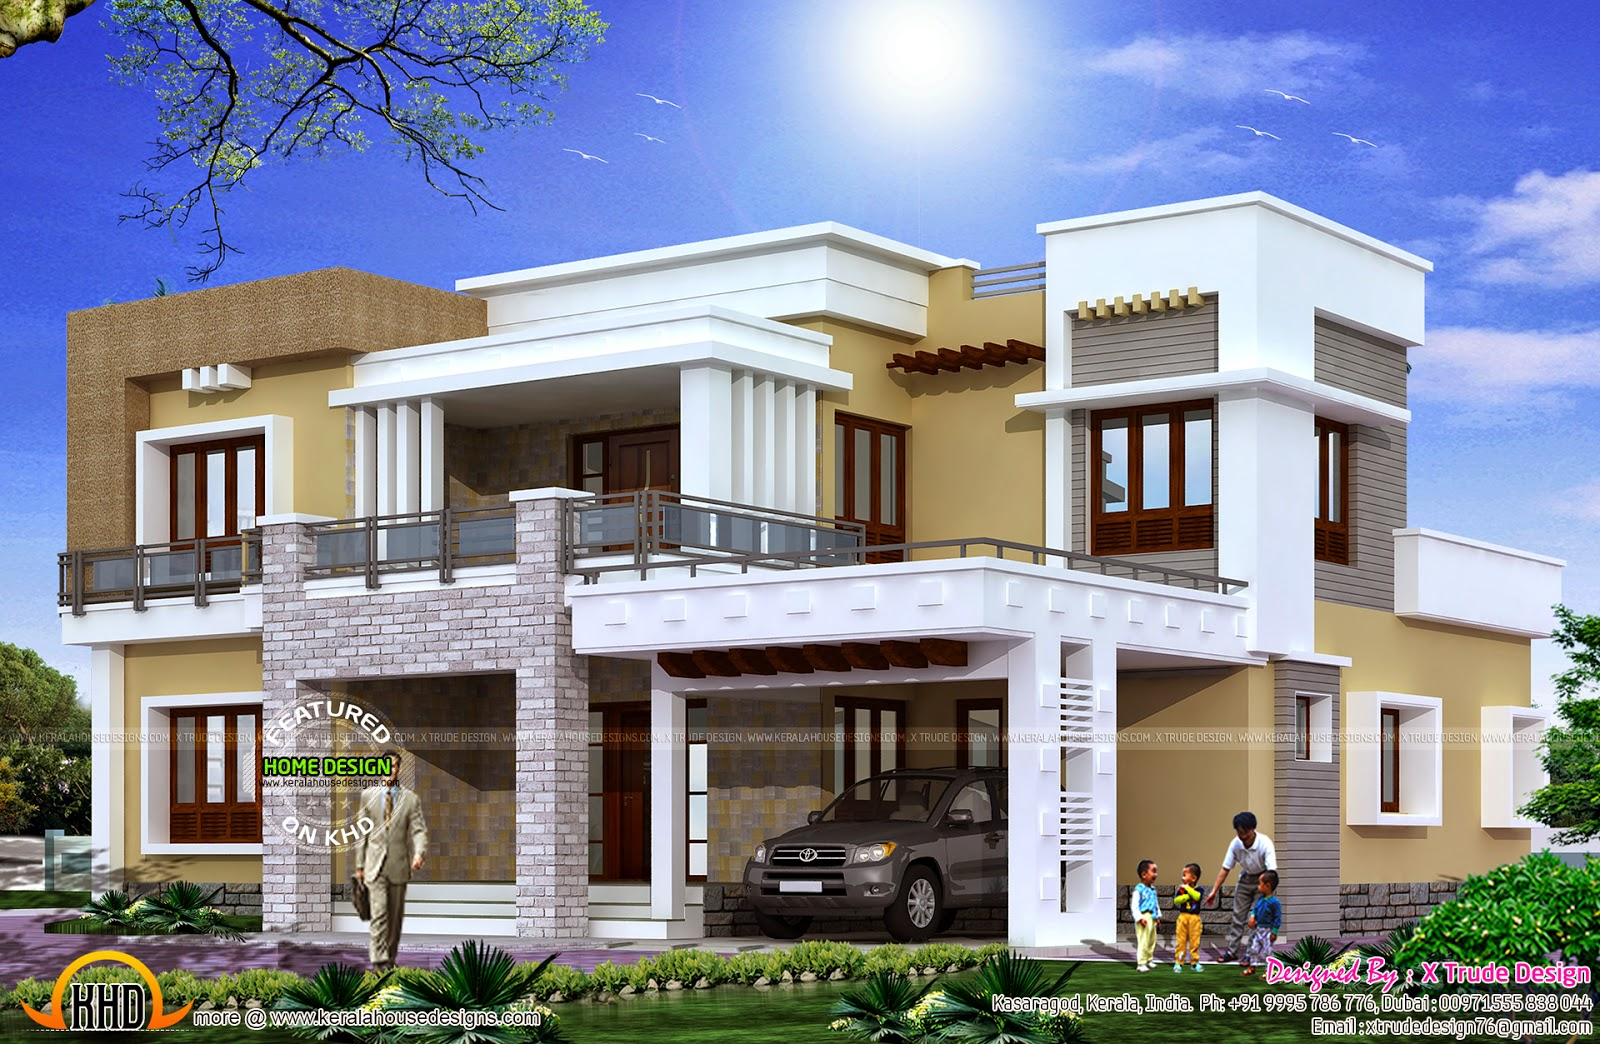 3710 sq ft tamilnadu house design bedrooms 5 open Modern dream home design ideas